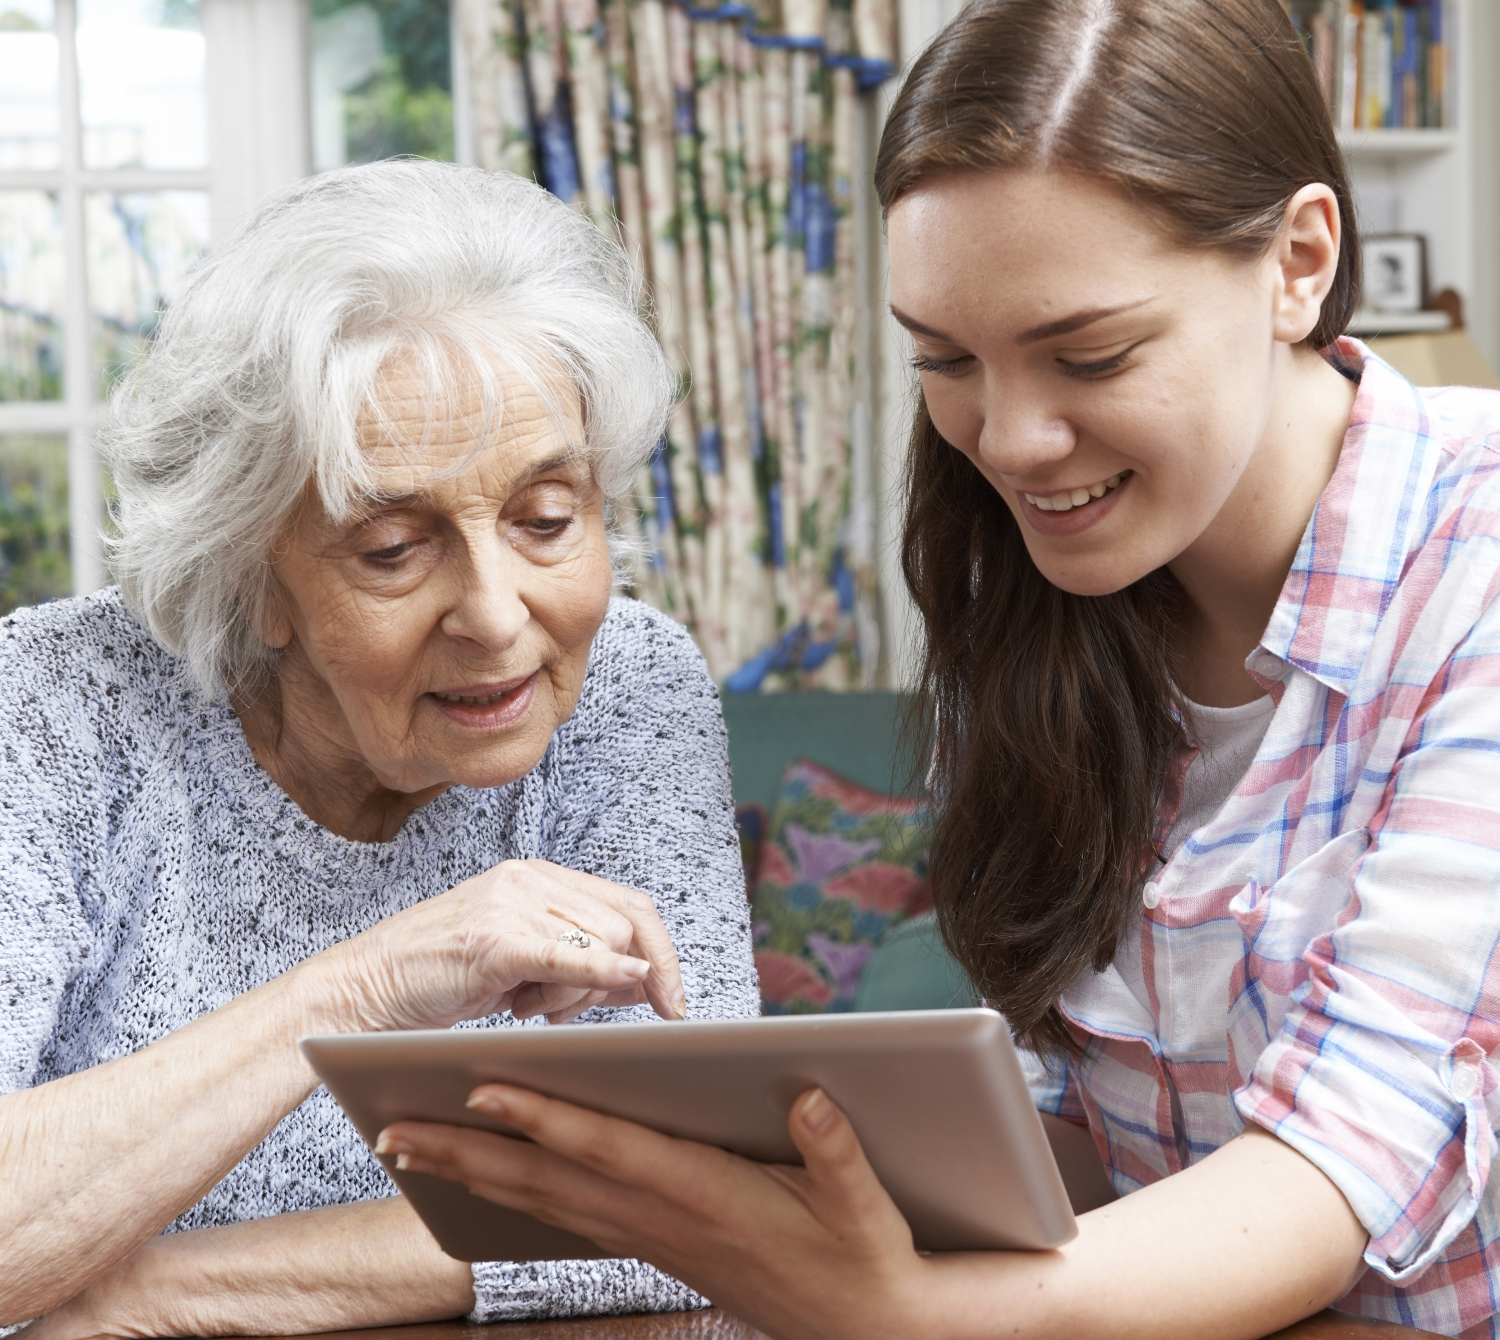 older woman and younger woman ipad ThinkstockPhotos-487910370_square.jpg